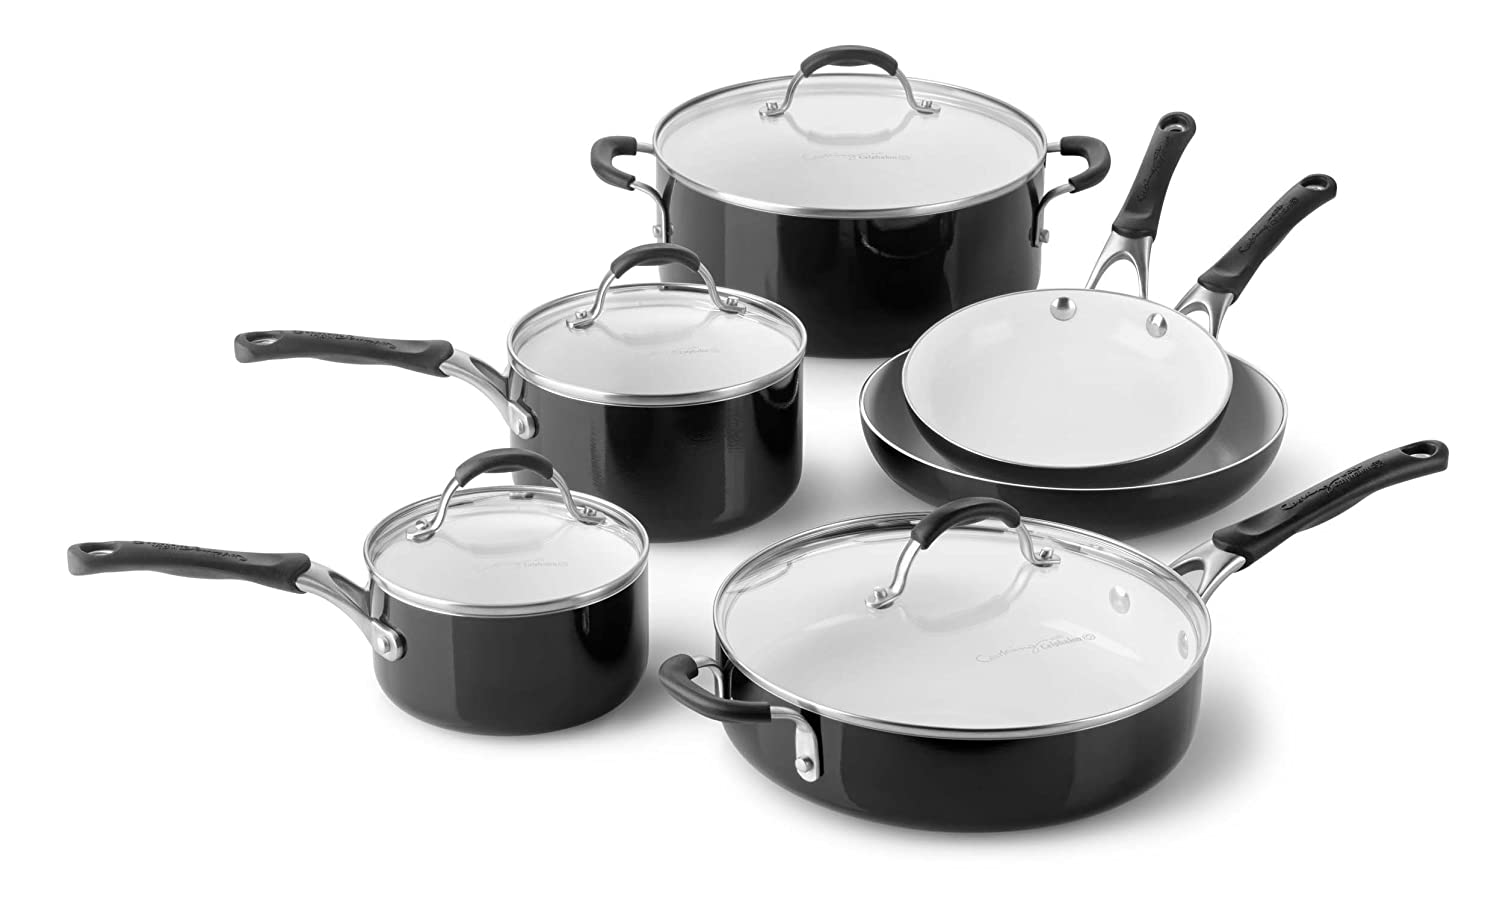 Calphalon 10 Piece Ceramic Nonstick Cookware Set